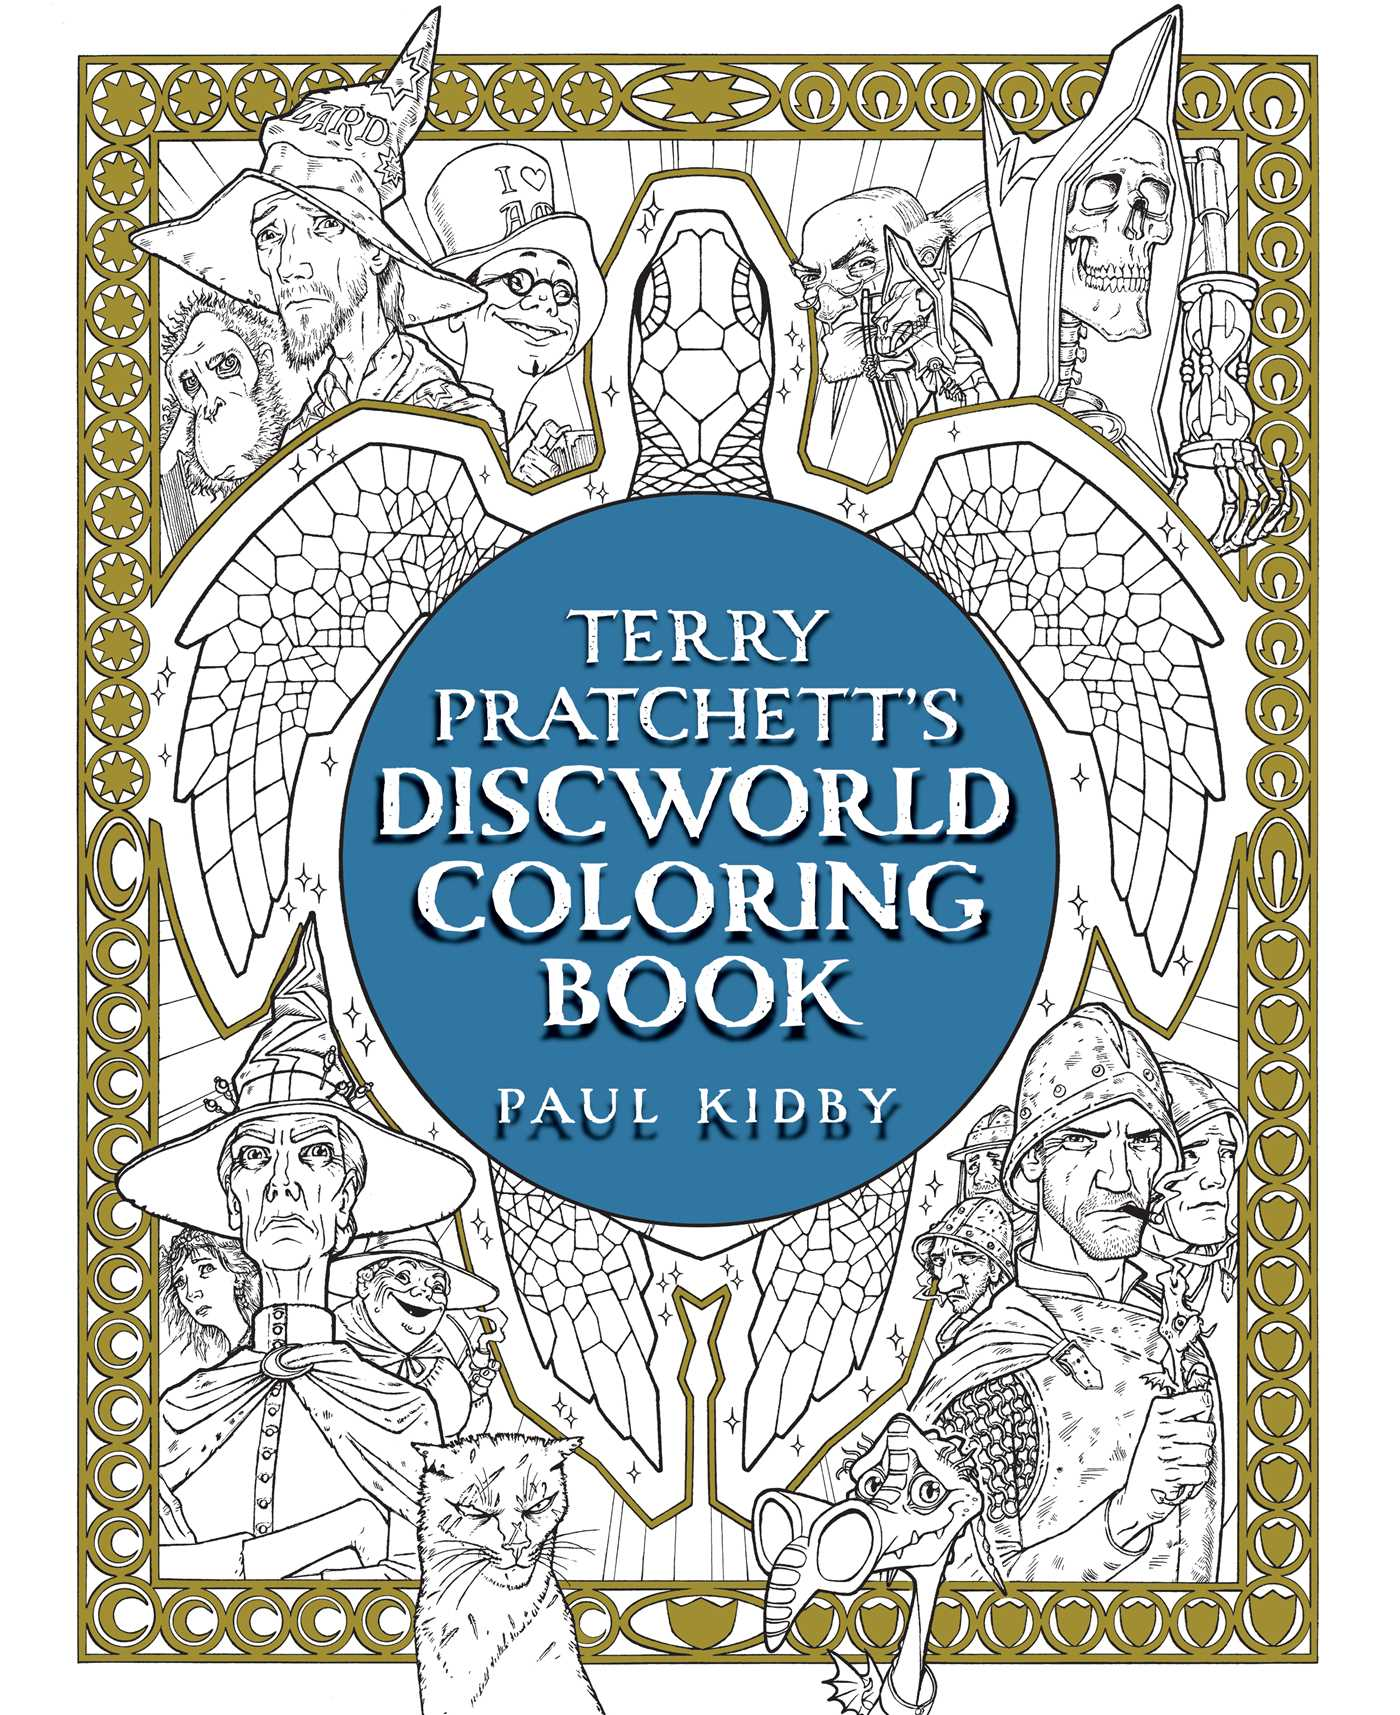 Terry pratchetts discworld coloring book 9781481498463 hr